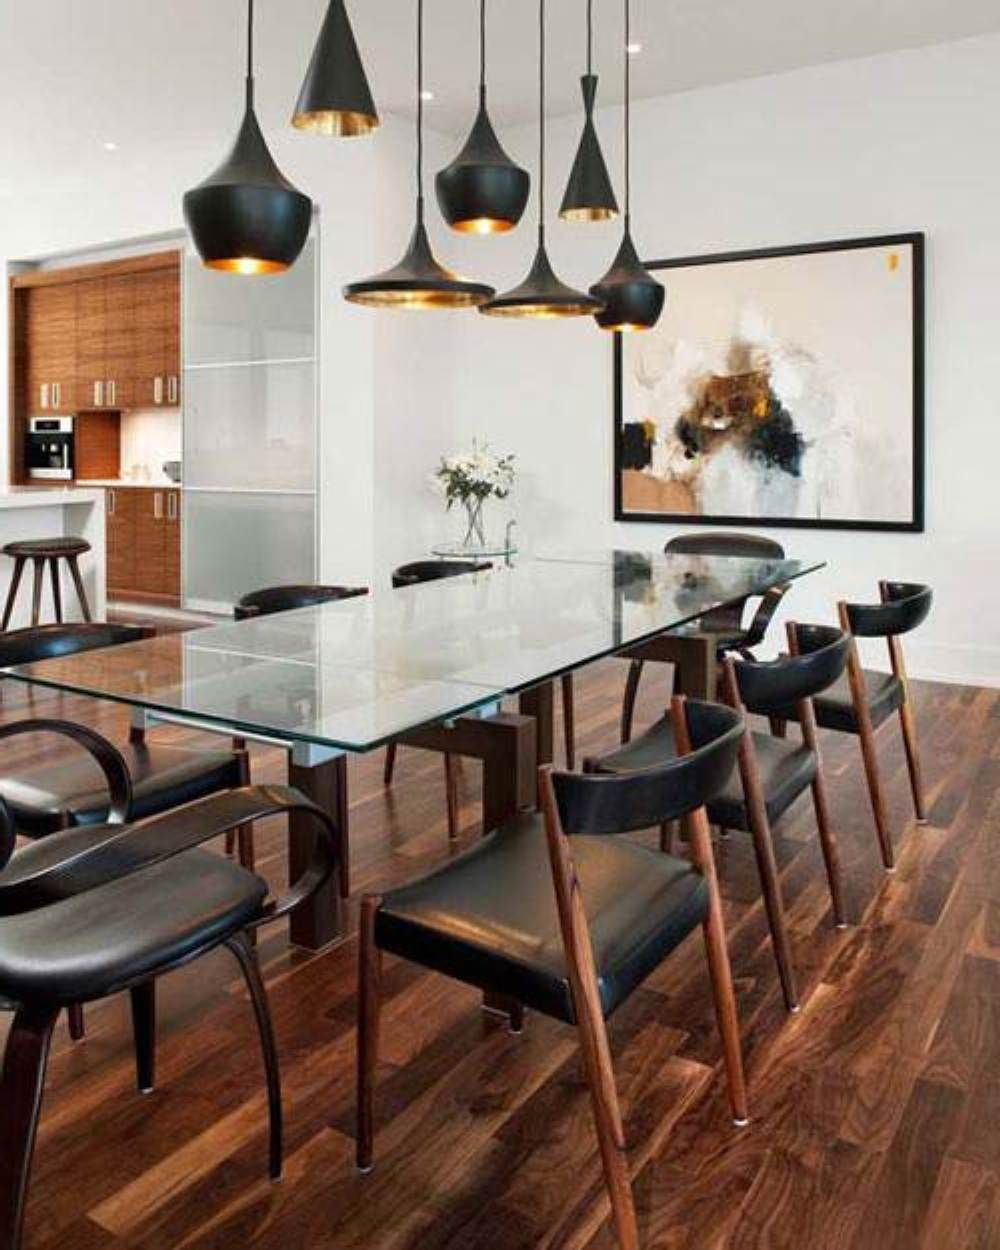 Fantastic Space. Tom Dixon Pendant Cluster. #diningroom #black #white #wood  | Dreamy Kitchens U0026 Dining Rooms | Pinterest | Tom Dixon, White Wood And  Toms